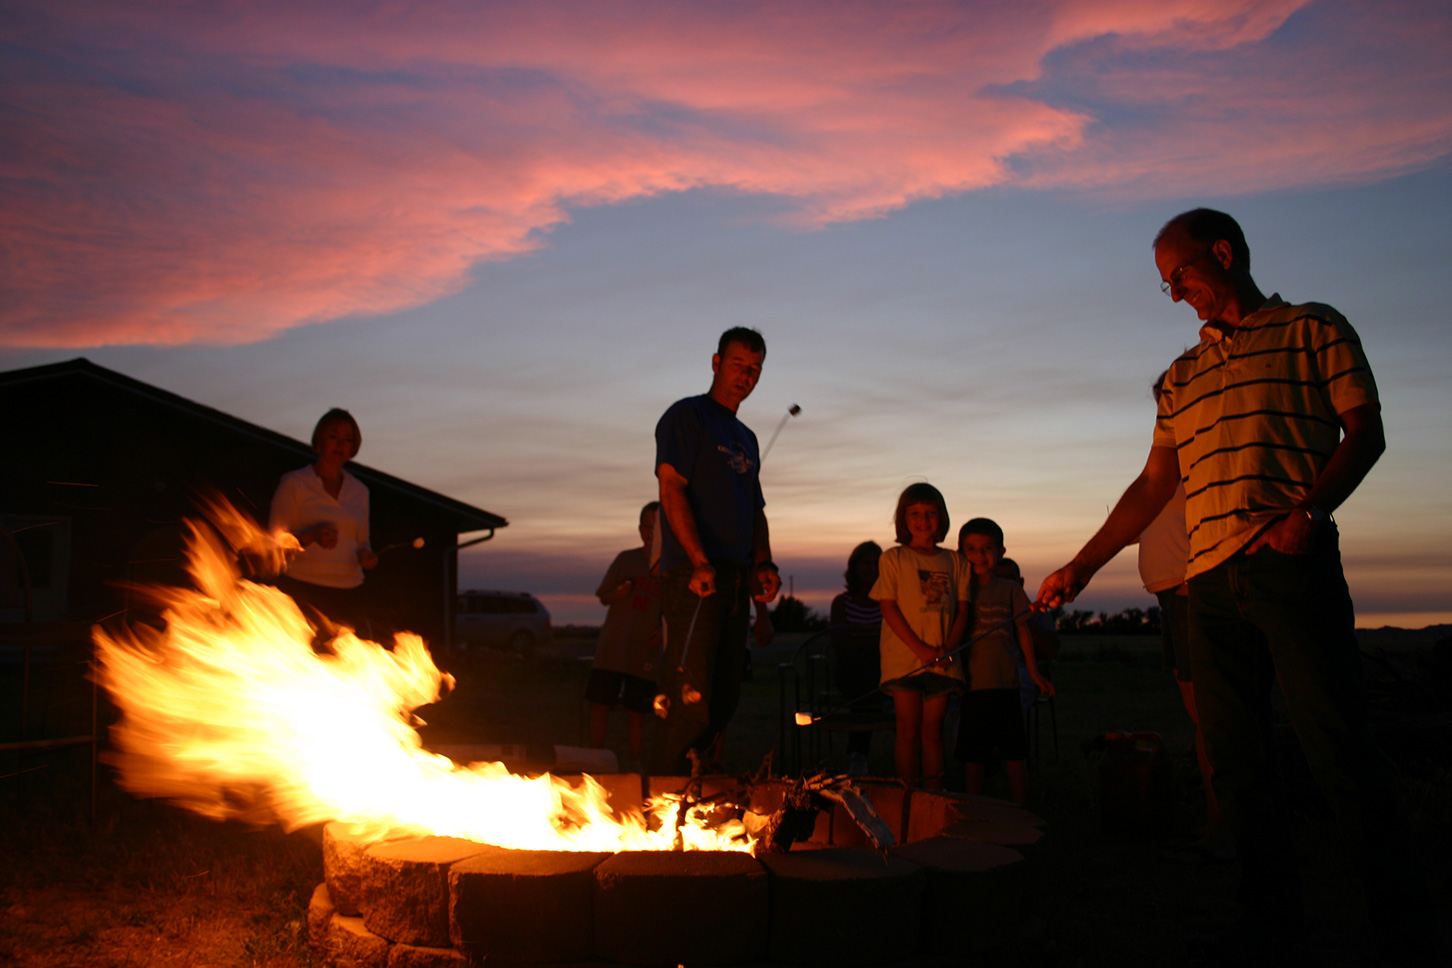 Family around an open fire at dusk cooking mashmellows